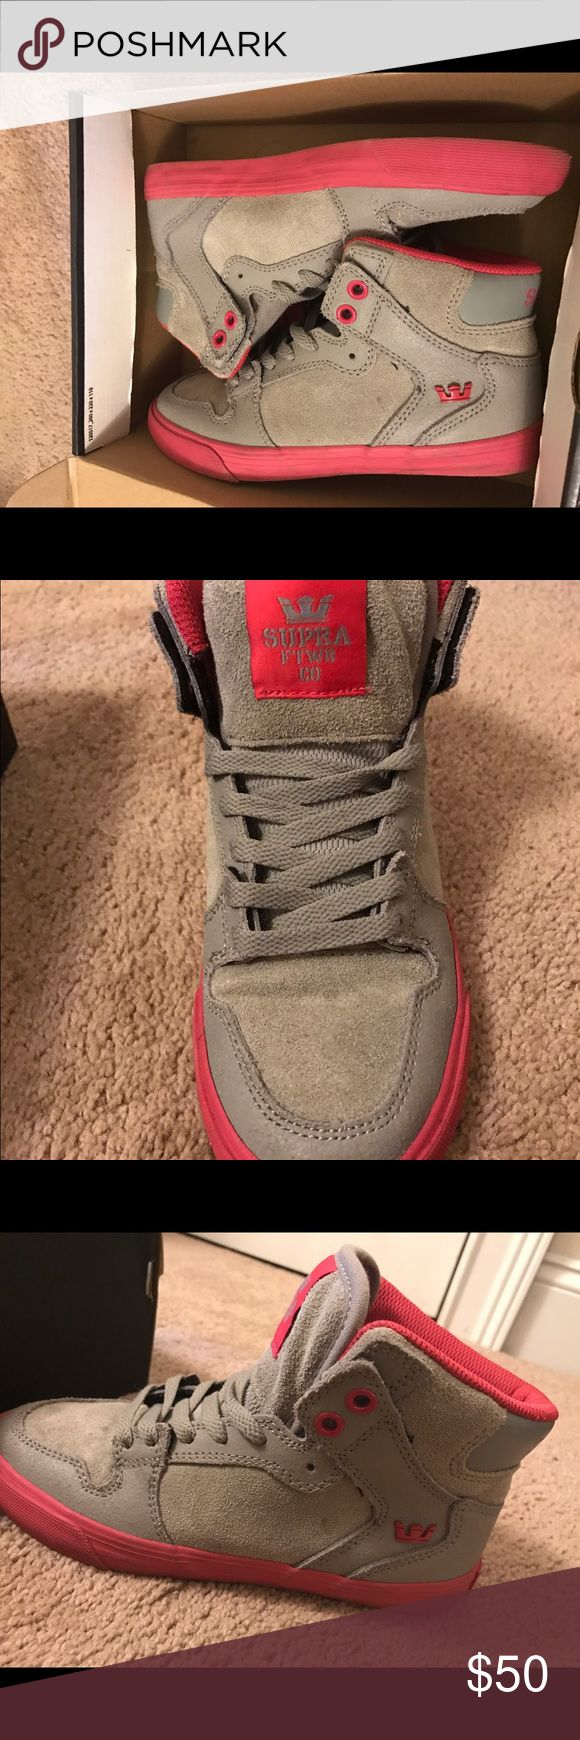 Supra Sneakers for girls in box Gray with pink highlighted high top sneakers. No tags, but never worn. Supra Shoes Sneakers